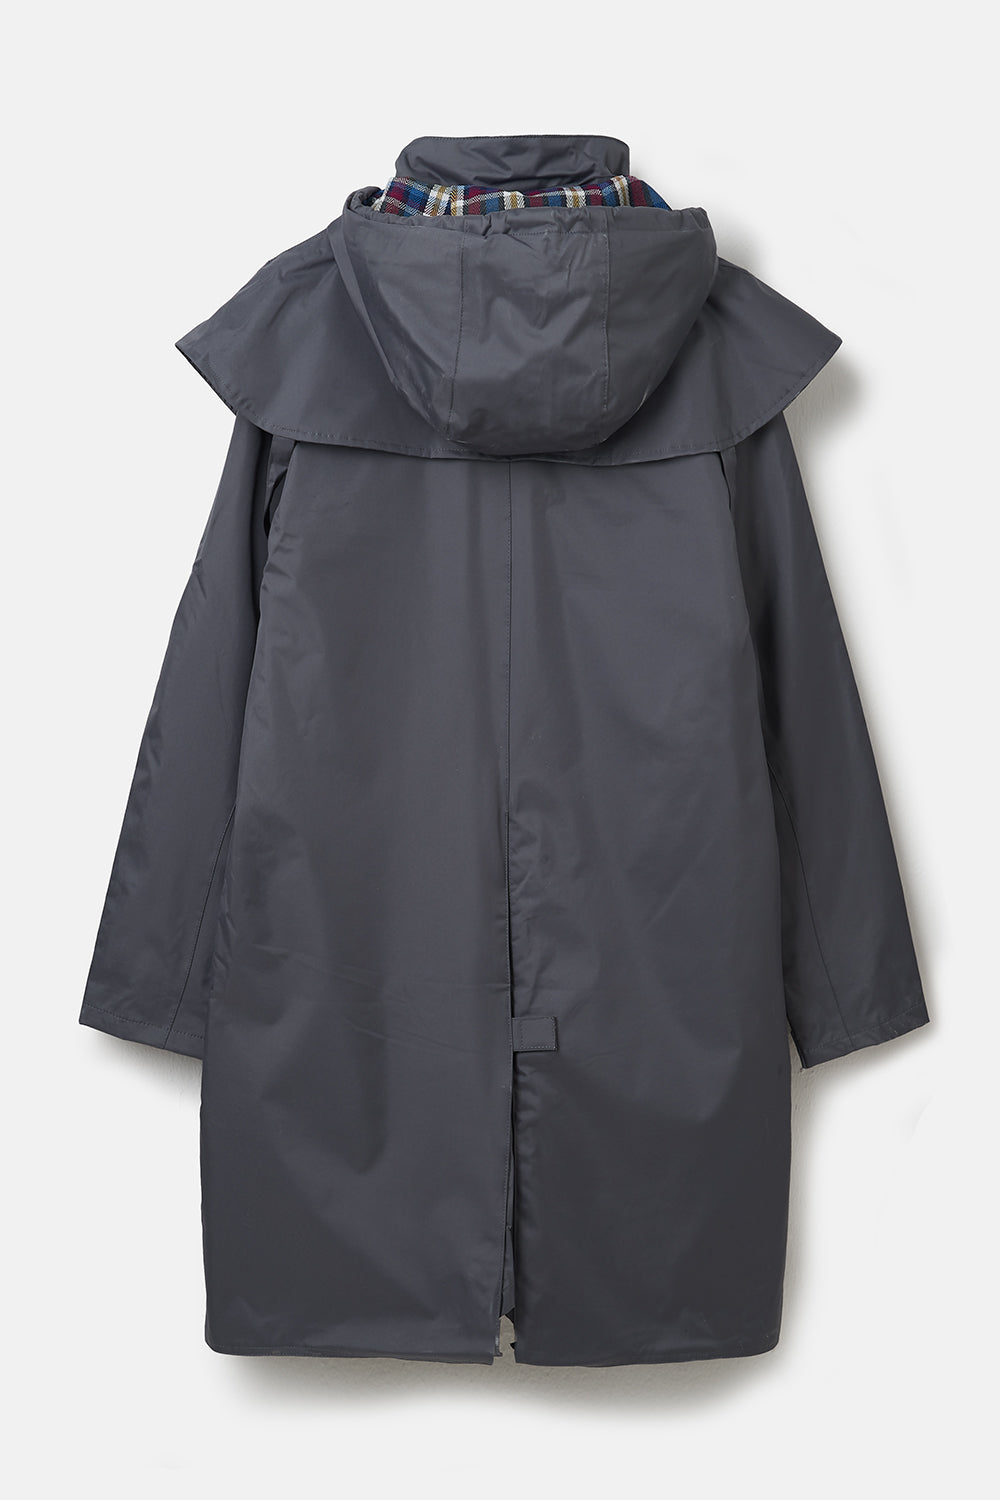 Outrider 3/4 Length Waterproof Raincoat - Urban Grey